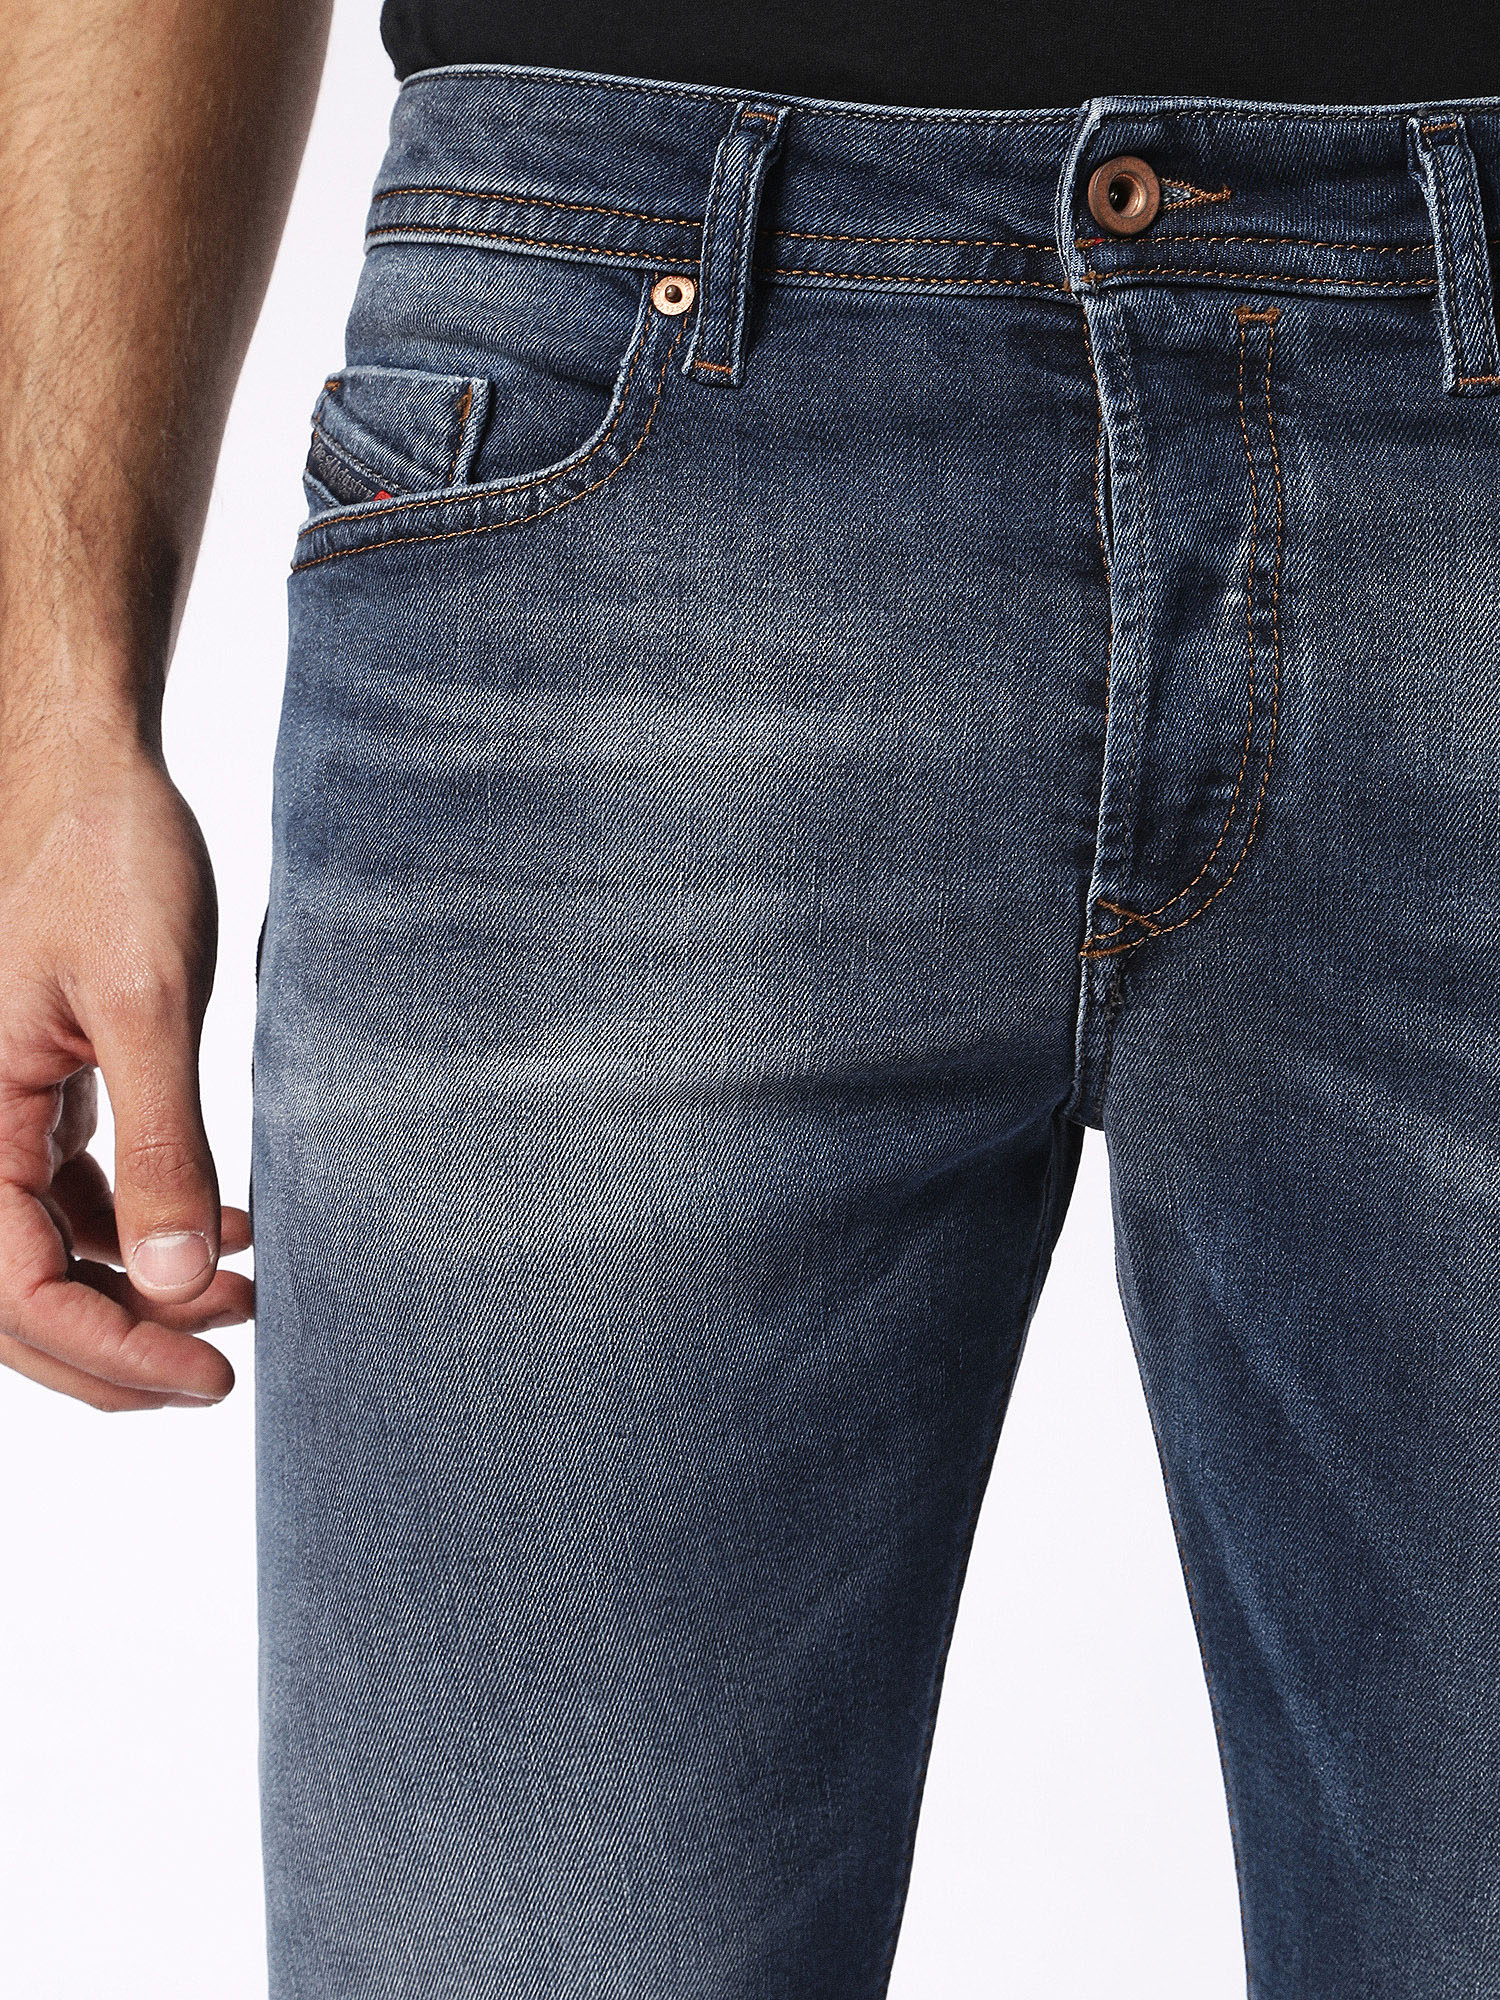 Diesel - Buster 084NS,  - Jeans - Image 7